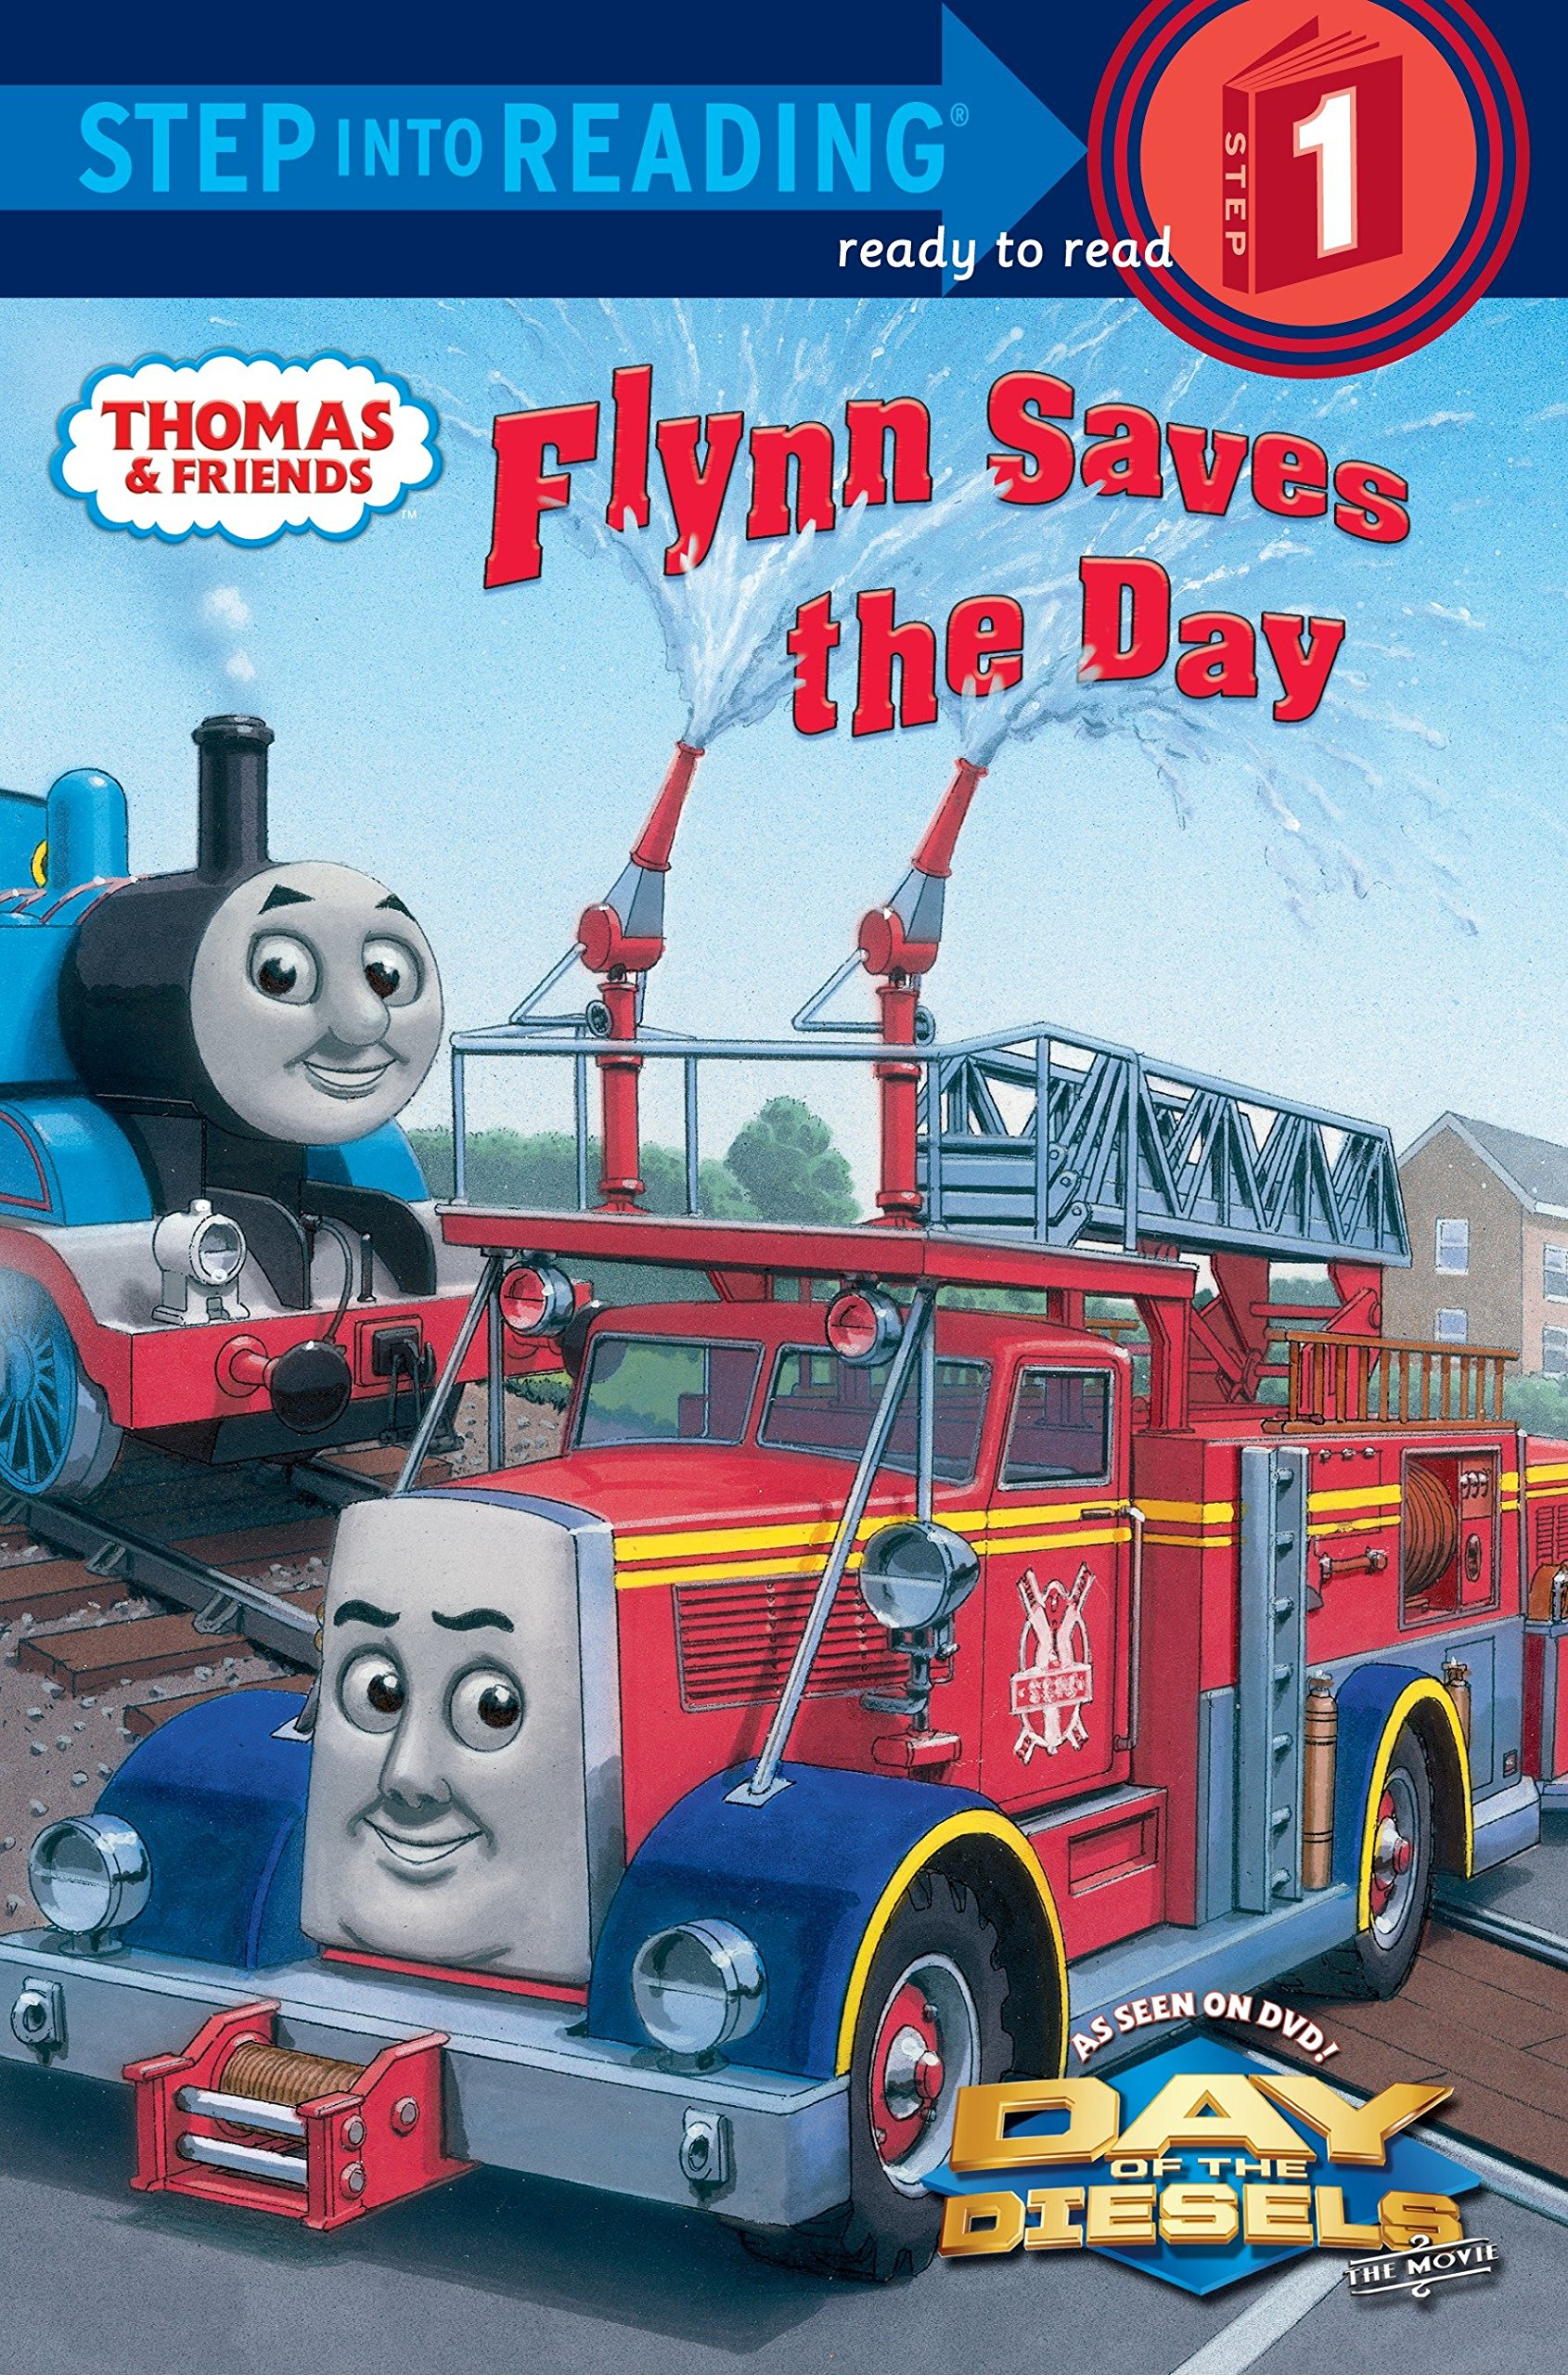 Flynn Saves the Day (Thomas & Friends) (Step into Reading) Paperback – August 9, 2011 Rev. W. Awdry Richard Courtney 0375869352 Media Tie-In